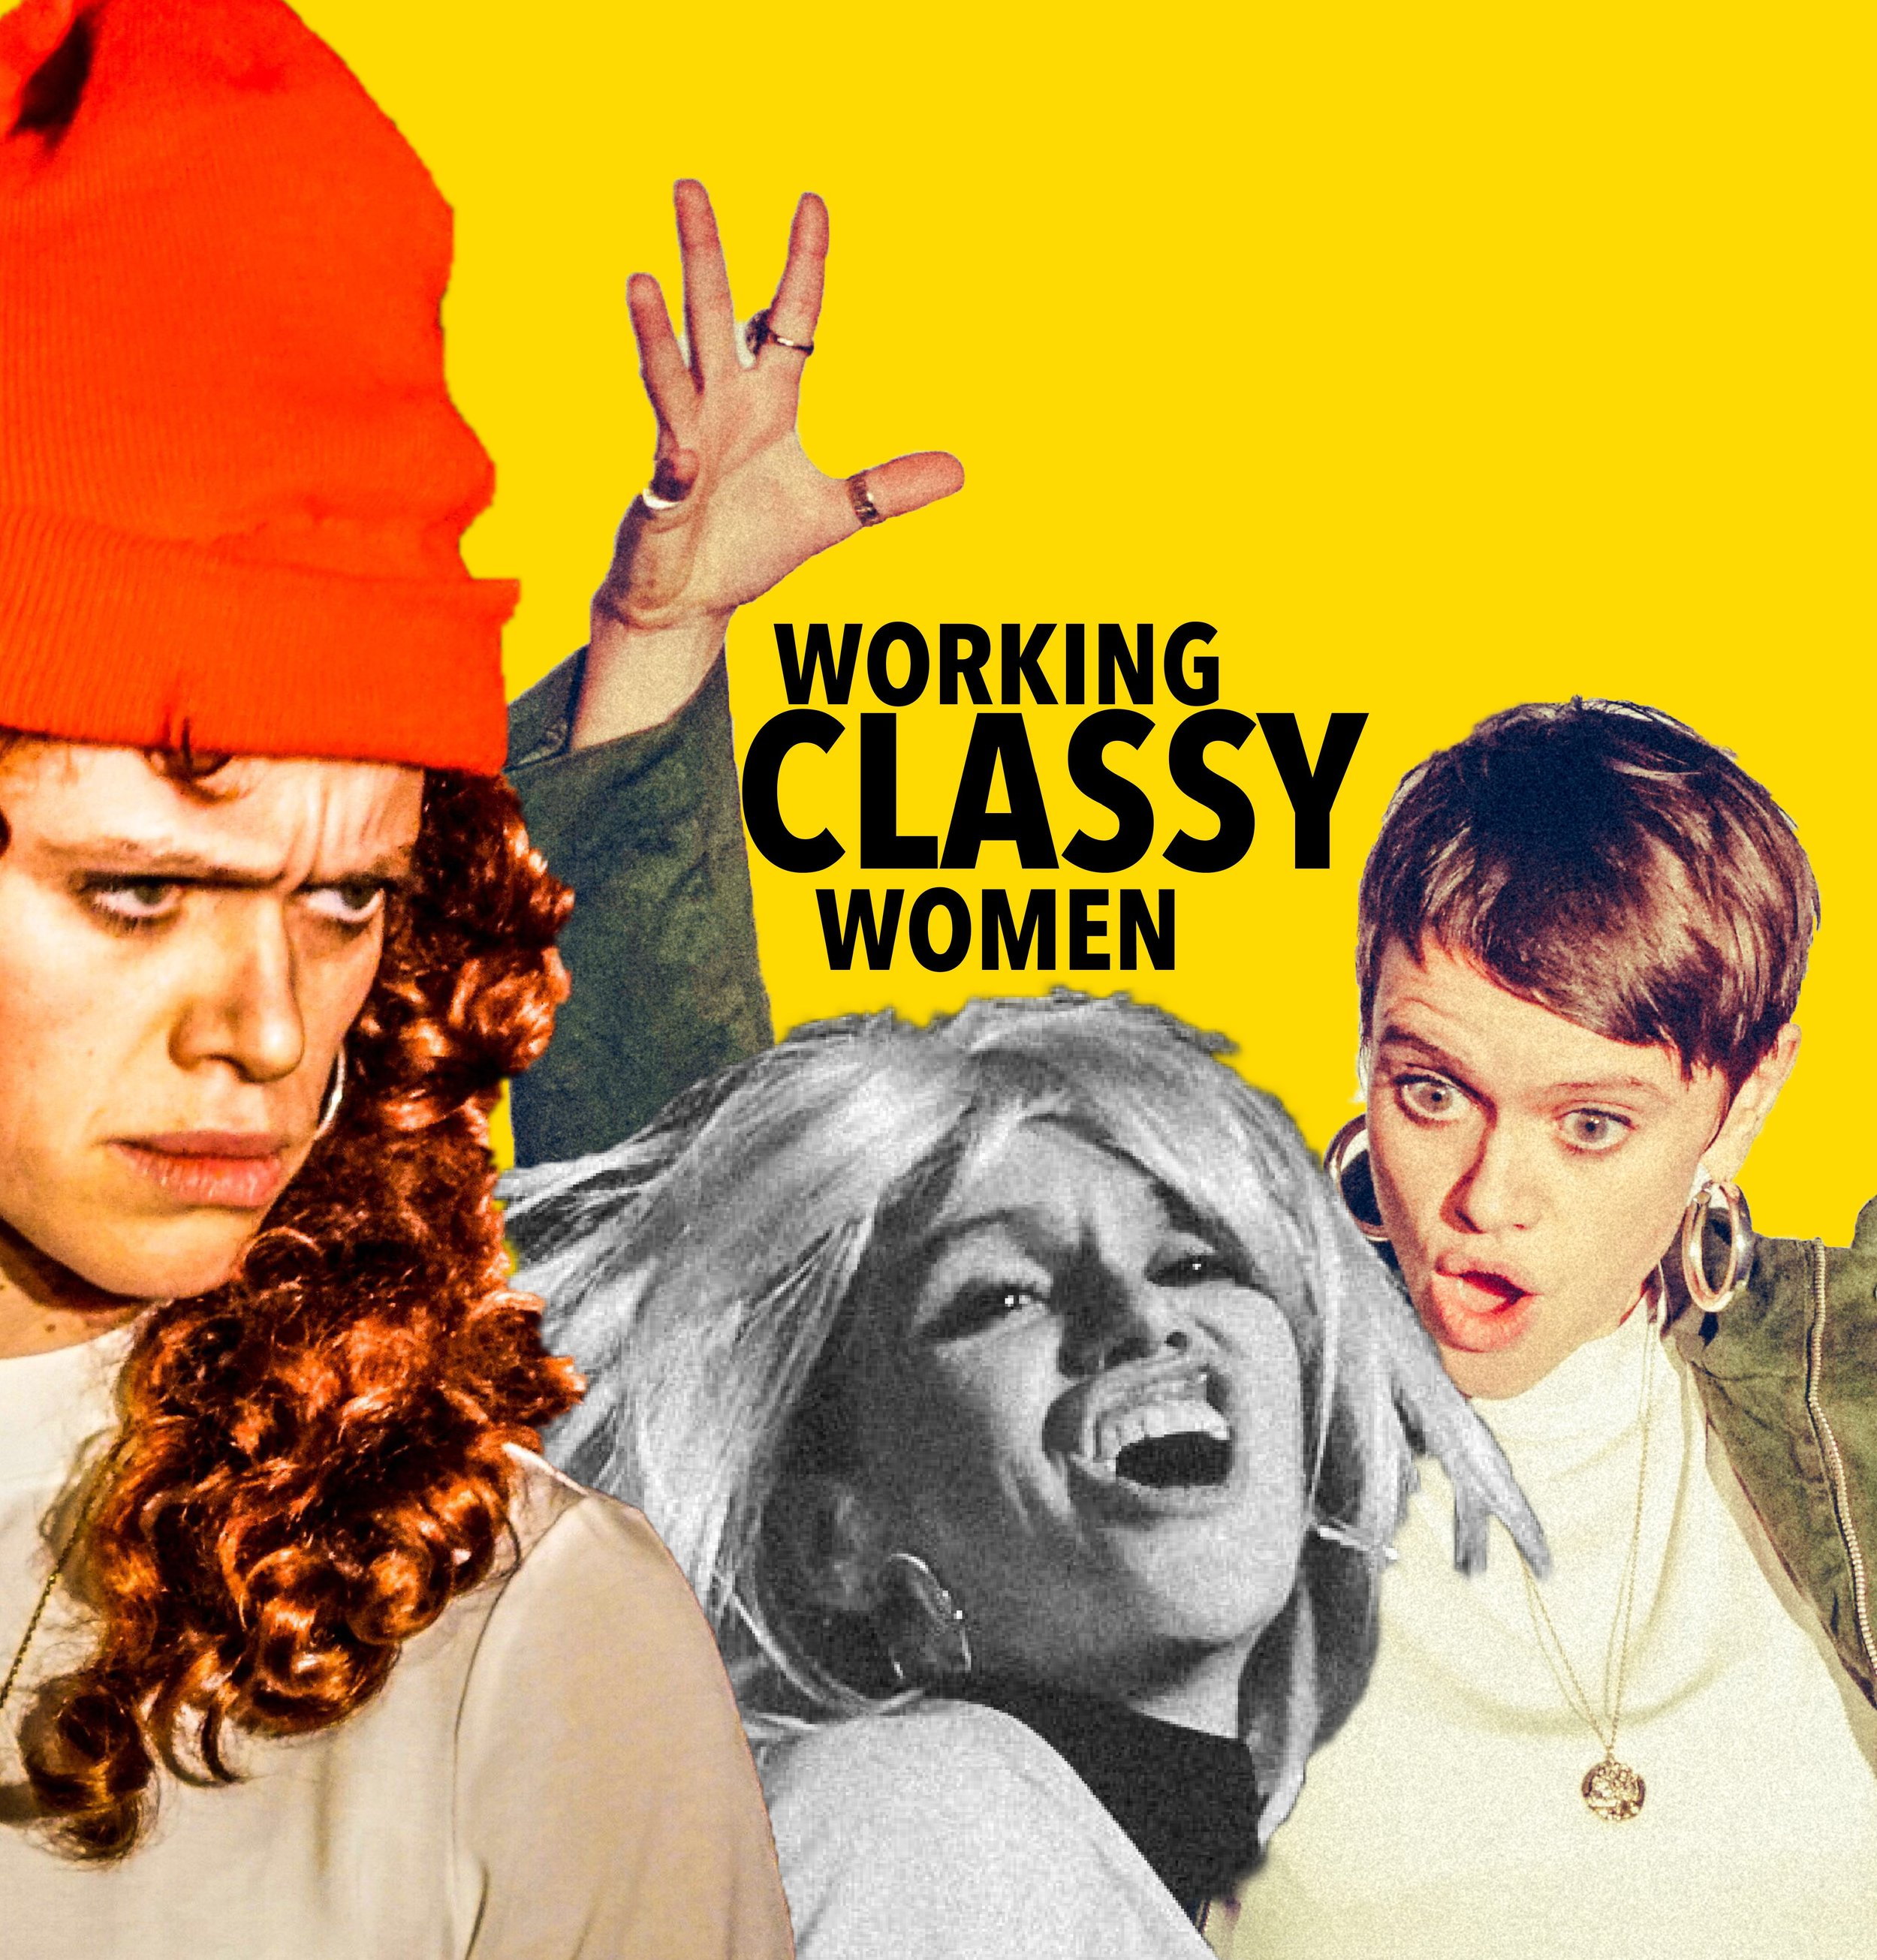 WORKING CLASY WOMEN PRESS 2.JPG